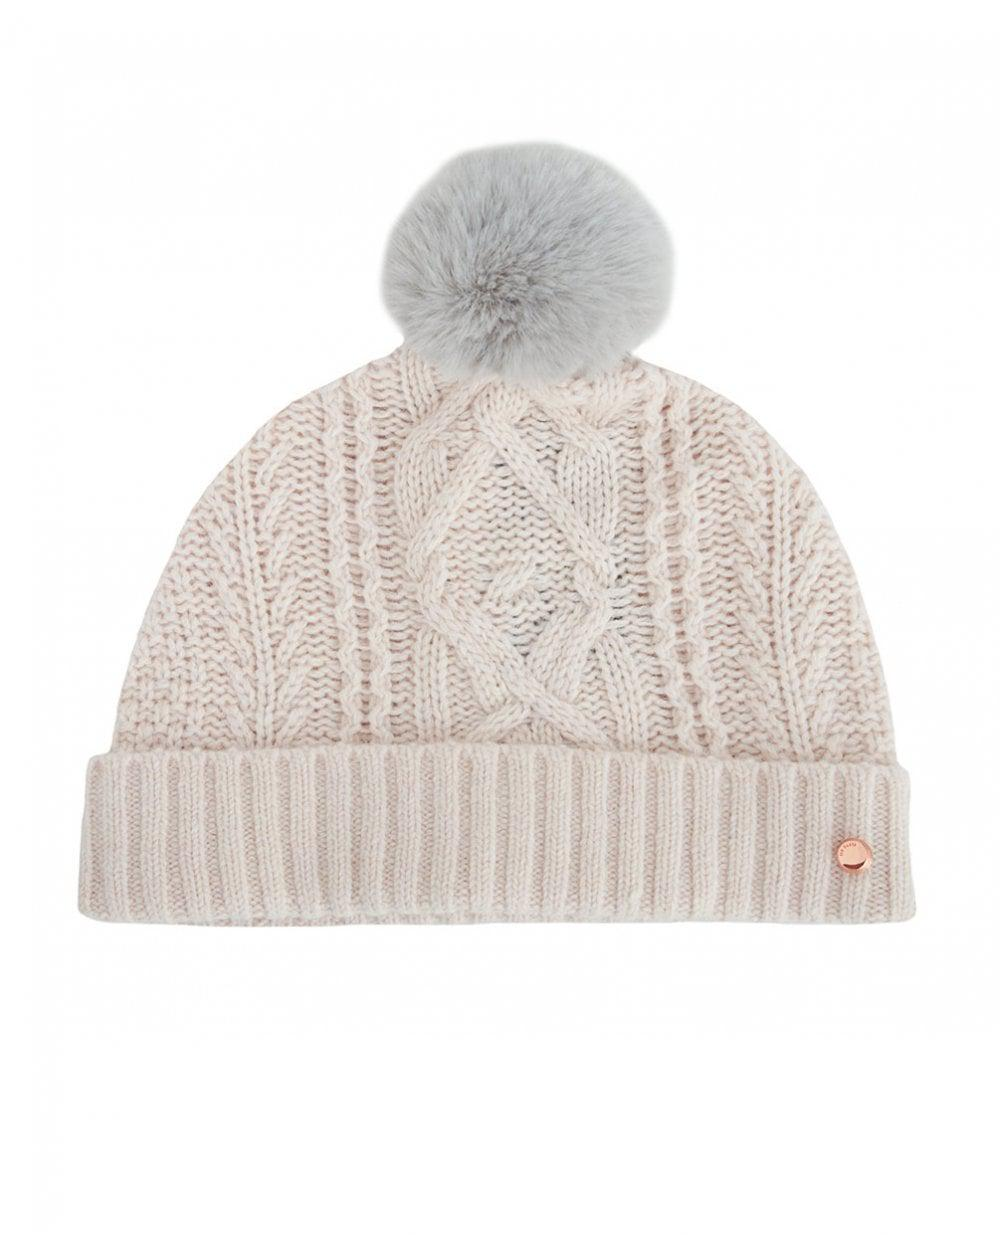 Ted Baker Raisa Knitted Pom Pom Hat And Sock Set in Natural - Lyst 23fabec87caf